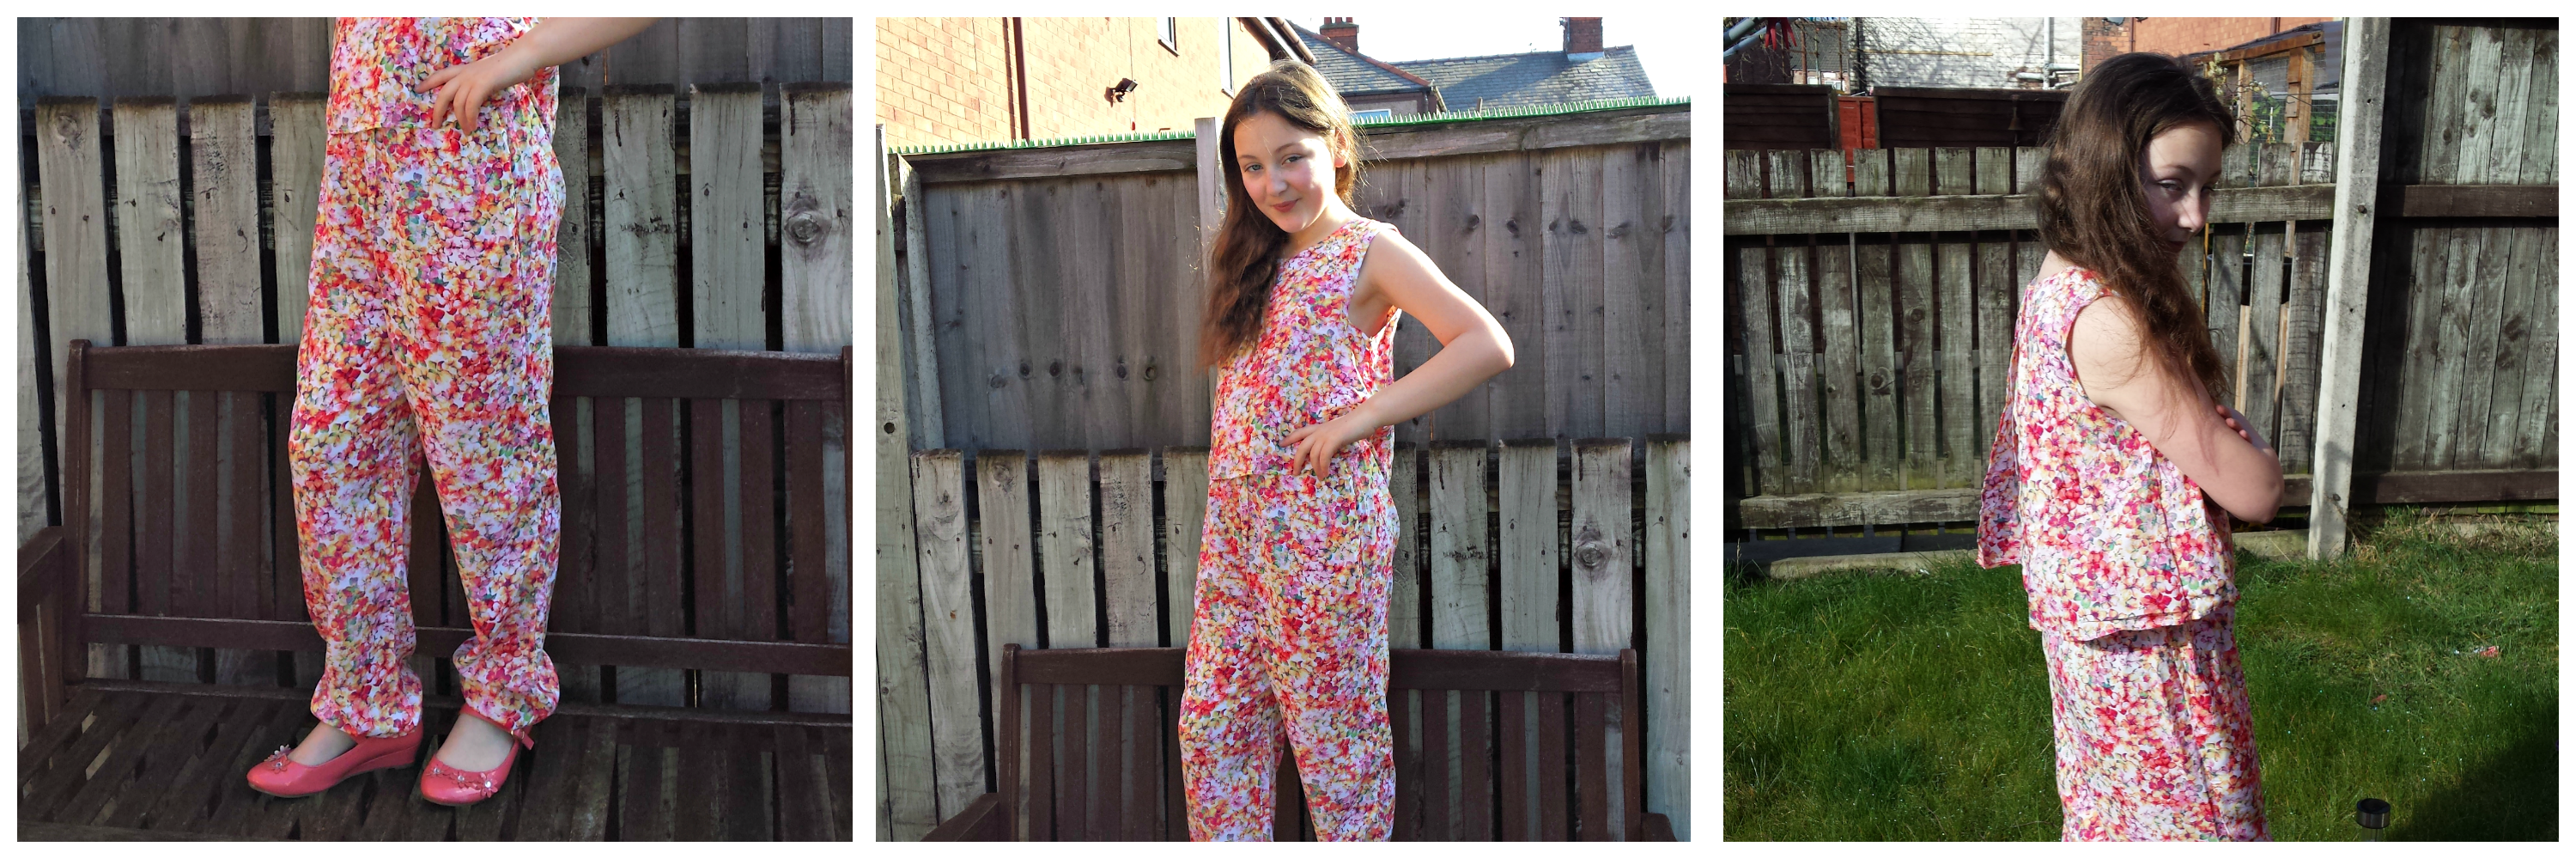 Olivia S Outfits Archives 2 One Frazzled Mum